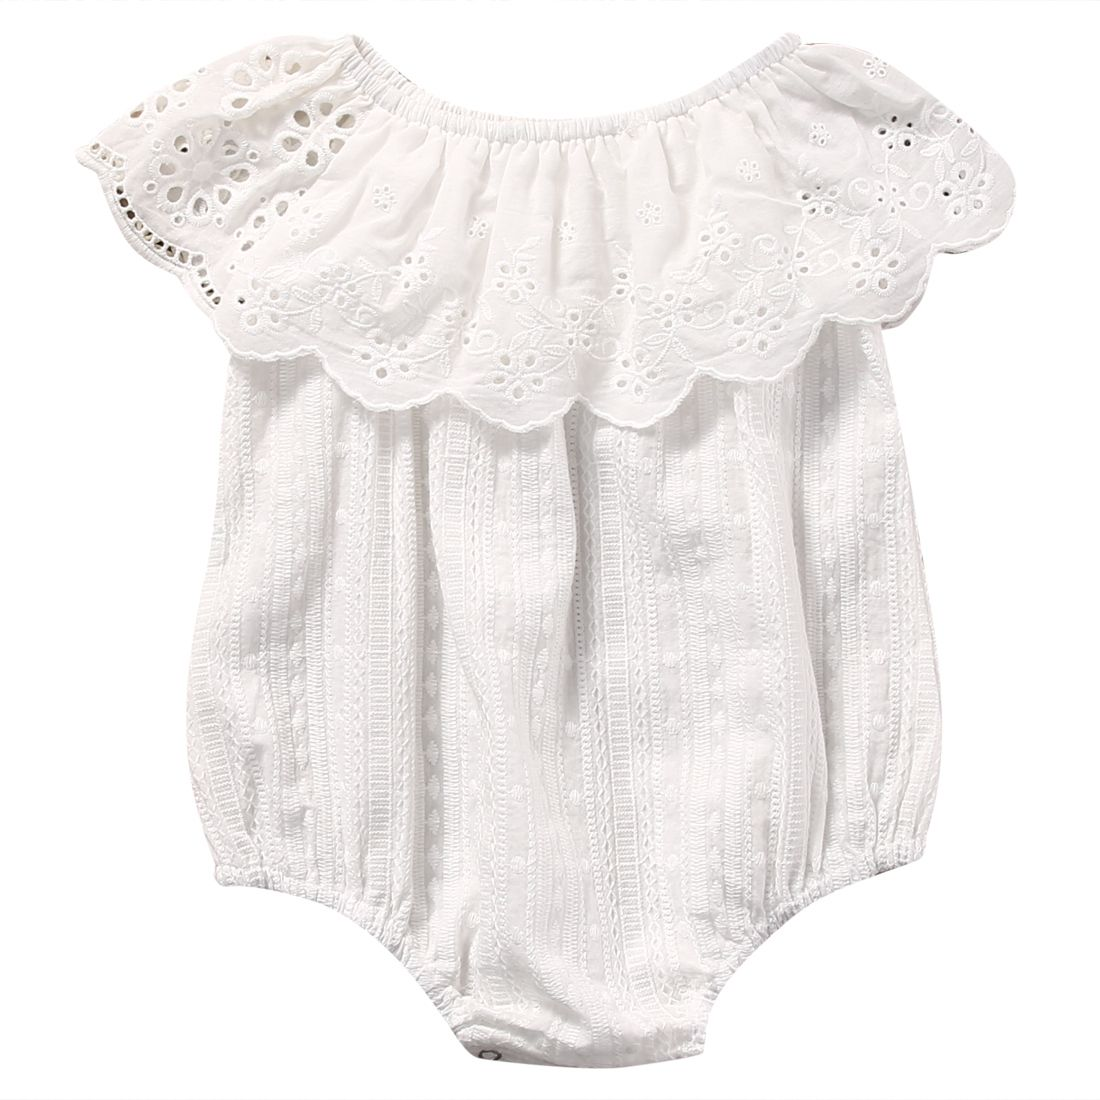 98bcc14a6f9 Babies clothes ·    Click to Buy    Newborn Toddler Baby Girl White Cotton Sleeveless  Romper Jumpsuit.